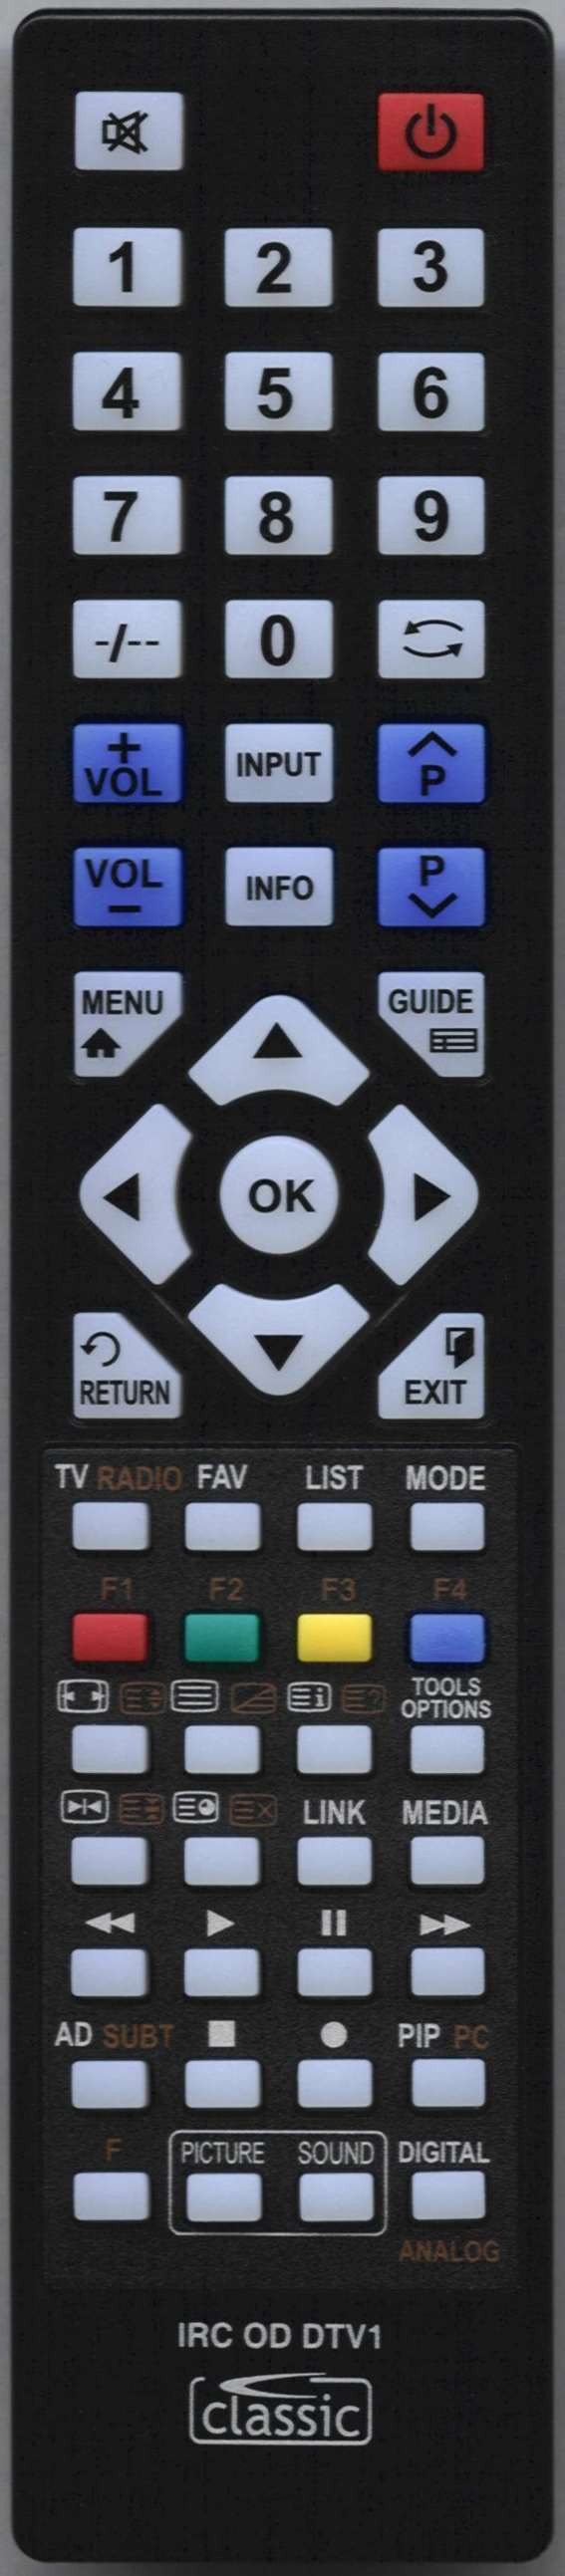 JVC LT-43C775 Remote Control Alternative